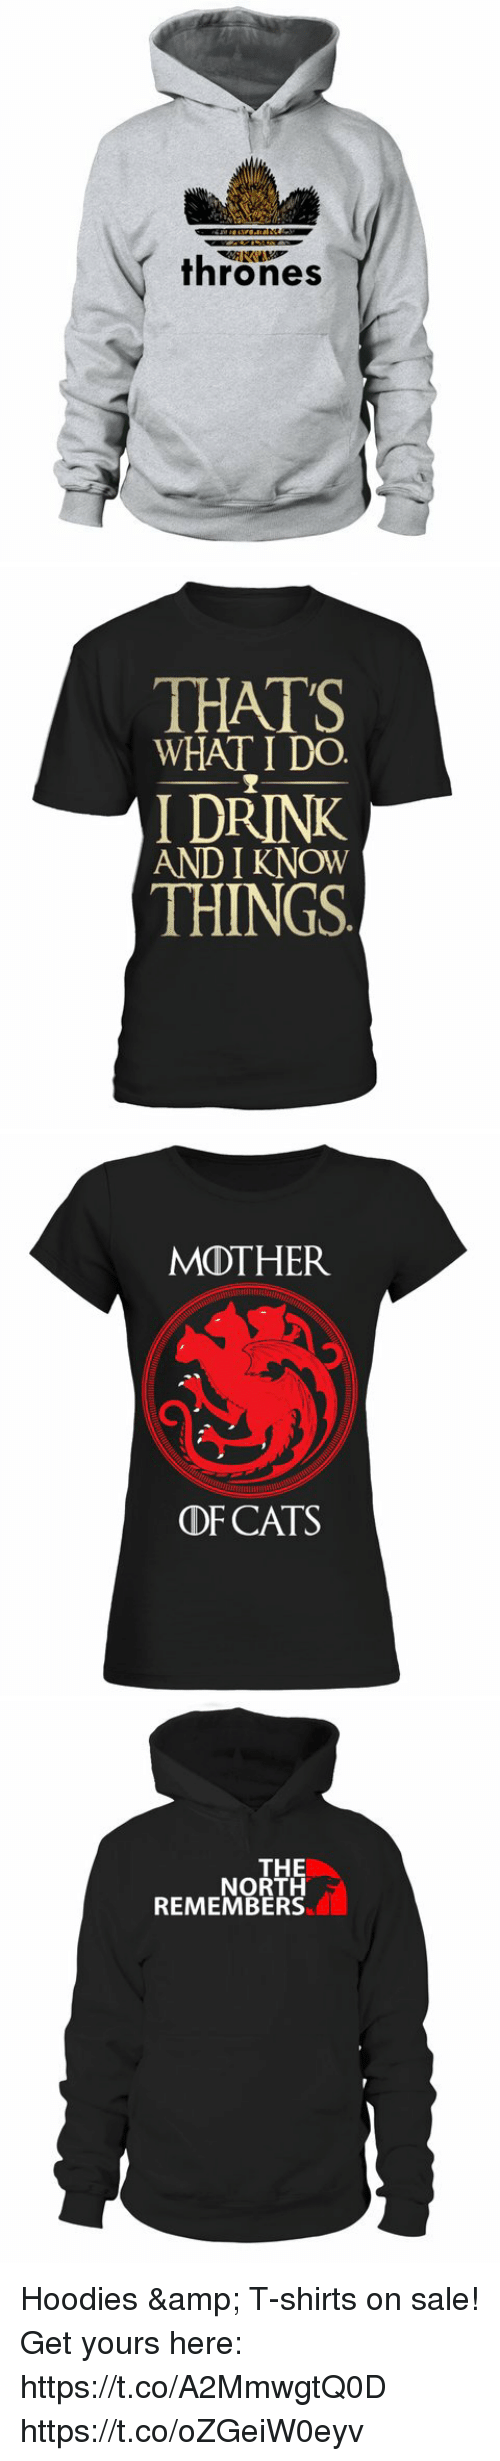 Cats, Mother, and Thrones: kr  thrones   THATS  WHAT I D0.  I DRINK  AND I KNOW  THINGS   MOTHER  DF CATS   THE  NORTH  REMEMBERS Hoodies & T-shirts on sale! Get yours here: https://t.co/A2MmwgtQ0D https://t.co/oZGeiW0eyv